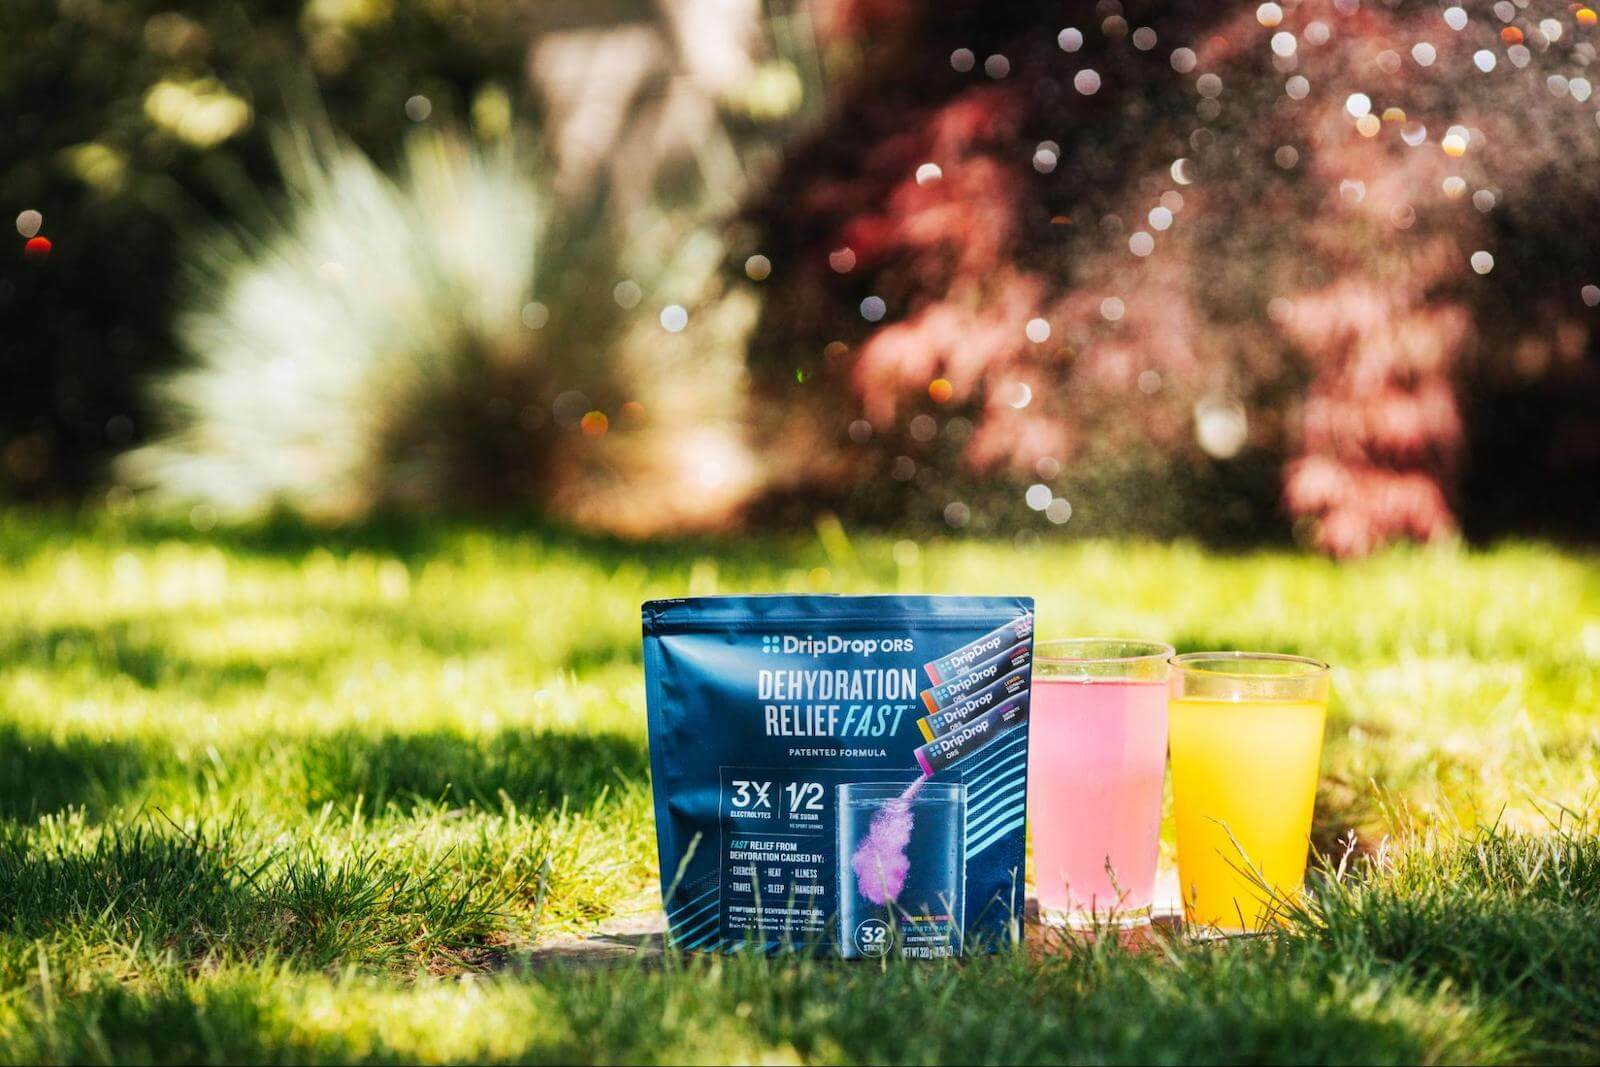 DripDrop pack and drinks on the grass